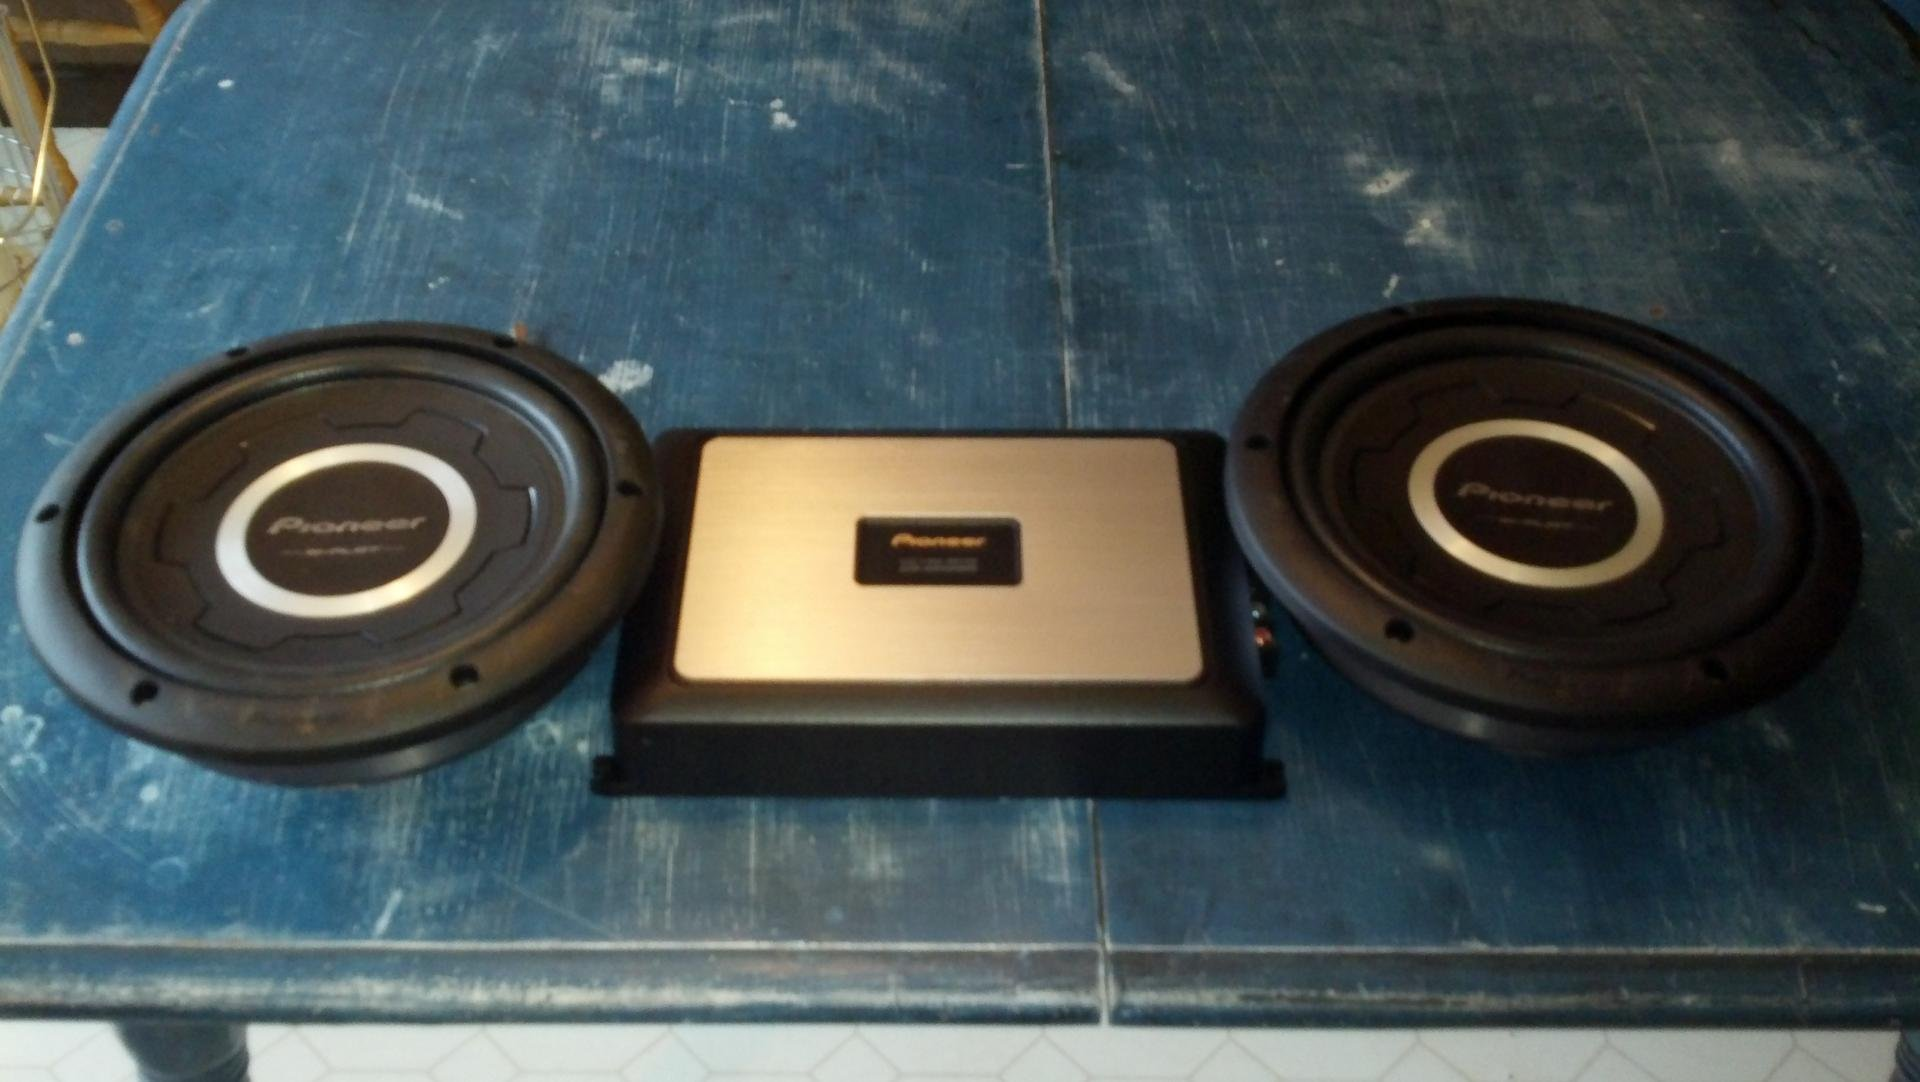 Ideas for sub enclosure-uploadfromtaptalk1330636804198.jpg